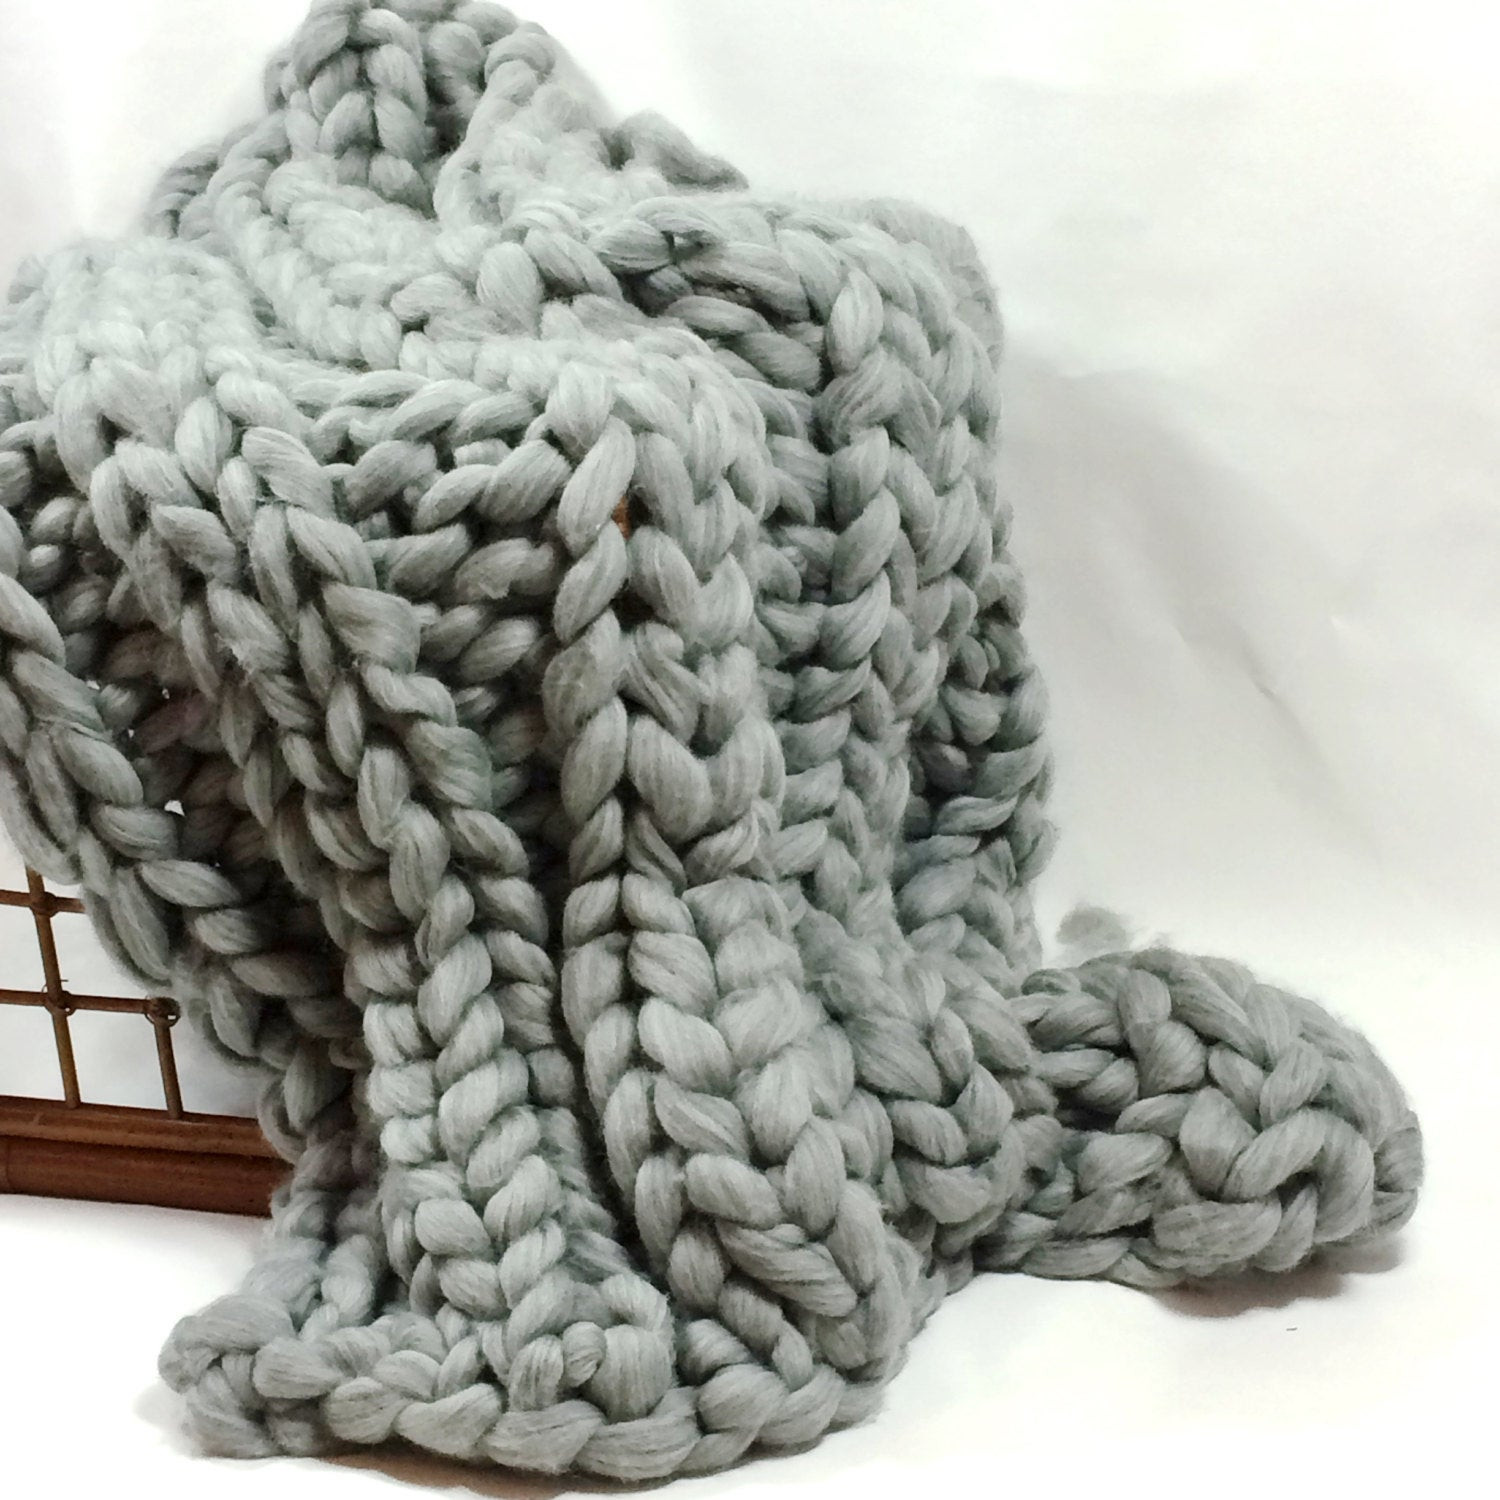 Chunky Wool Blanket Best Of Super Chunky Blanket 30×50 Pure Merino Wool Chunky Knit Of Incredible 43 Pictures Chunky Wool Blanket